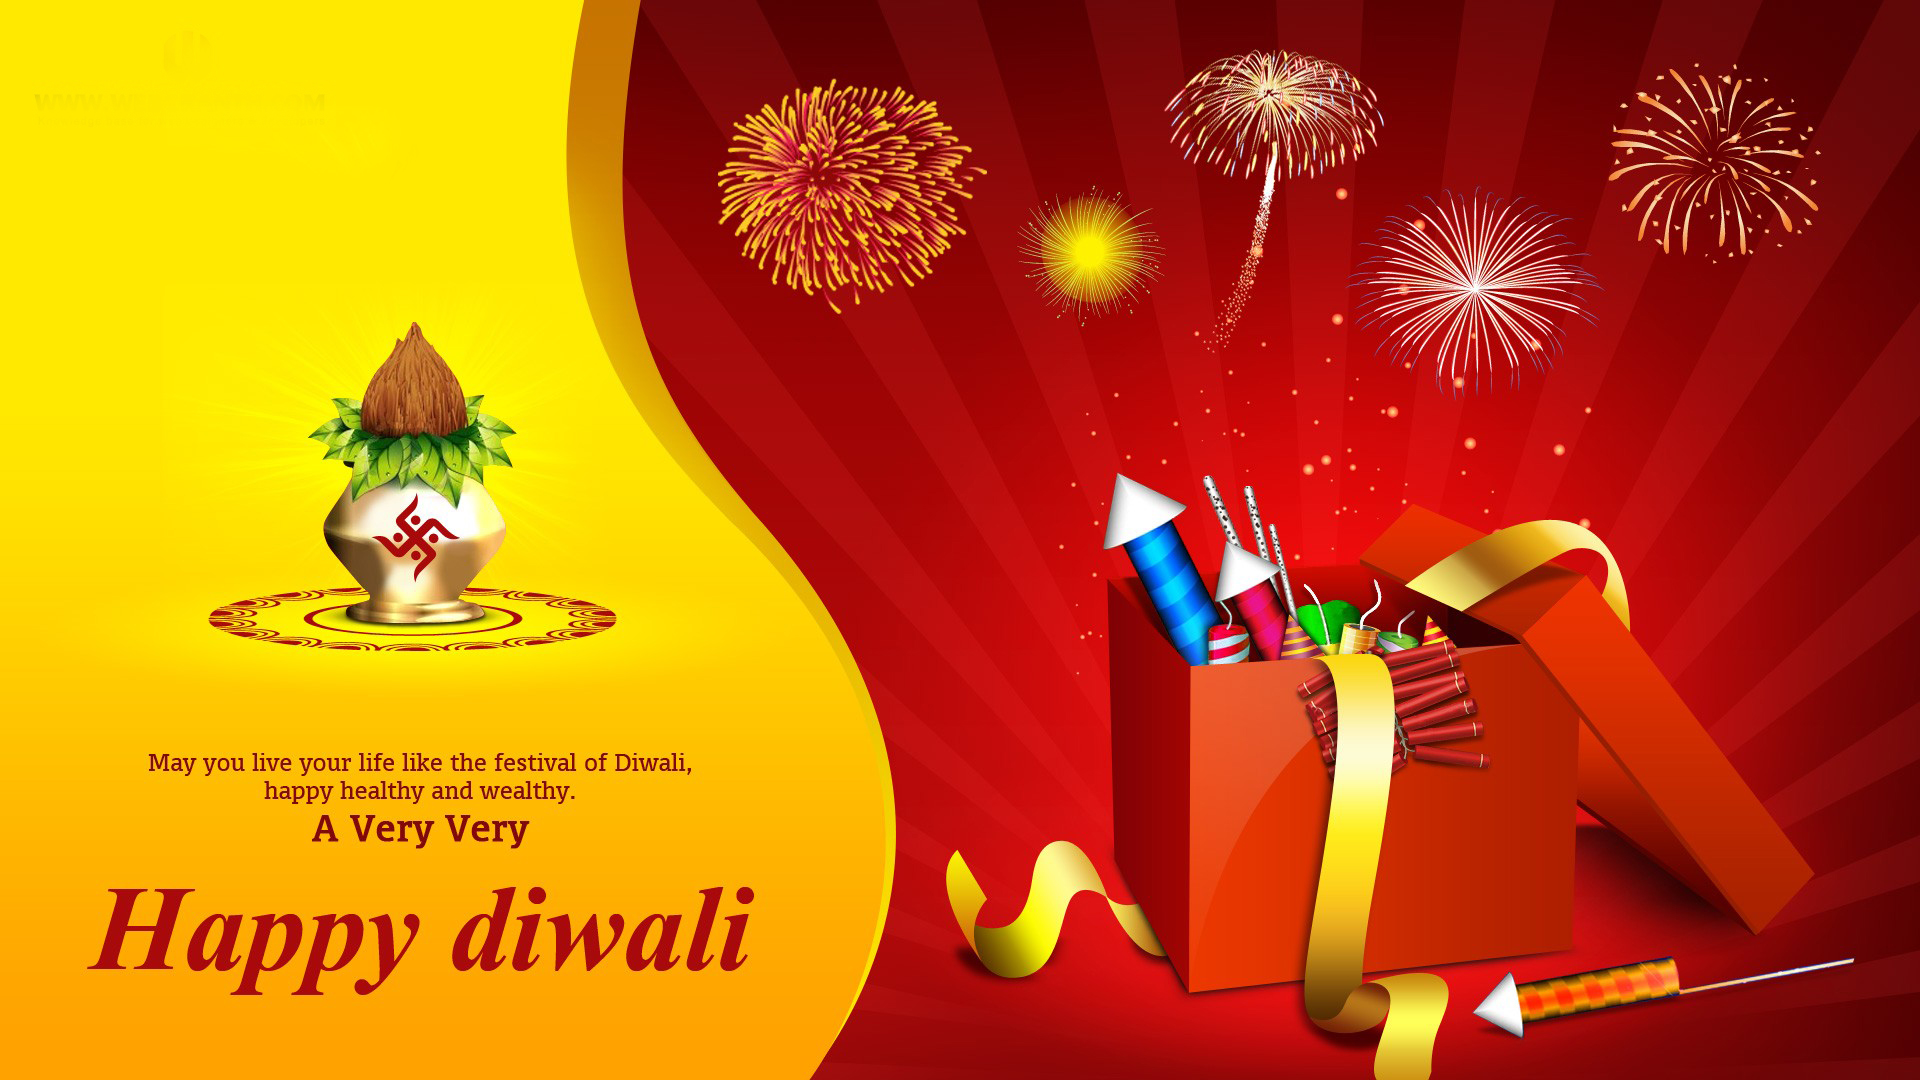 Happy diwali greetings wallpapers description download happy diwali greetings m4hsunfo